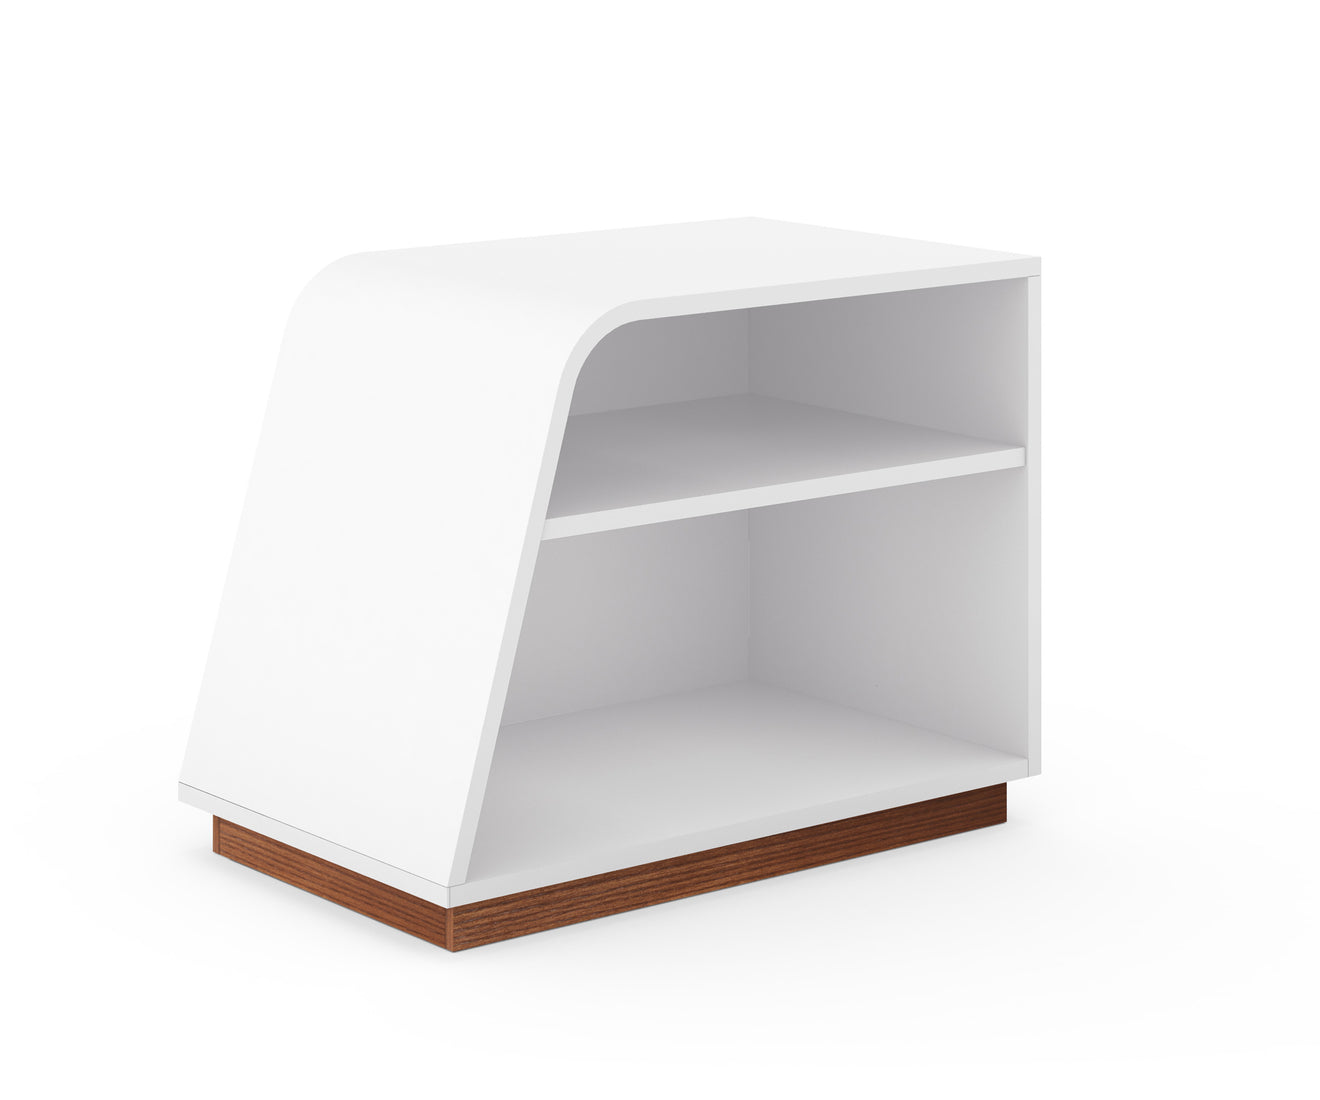 en bookshelfchoose curved il zoom bookcase listing color below handmade fullxfull bookcases